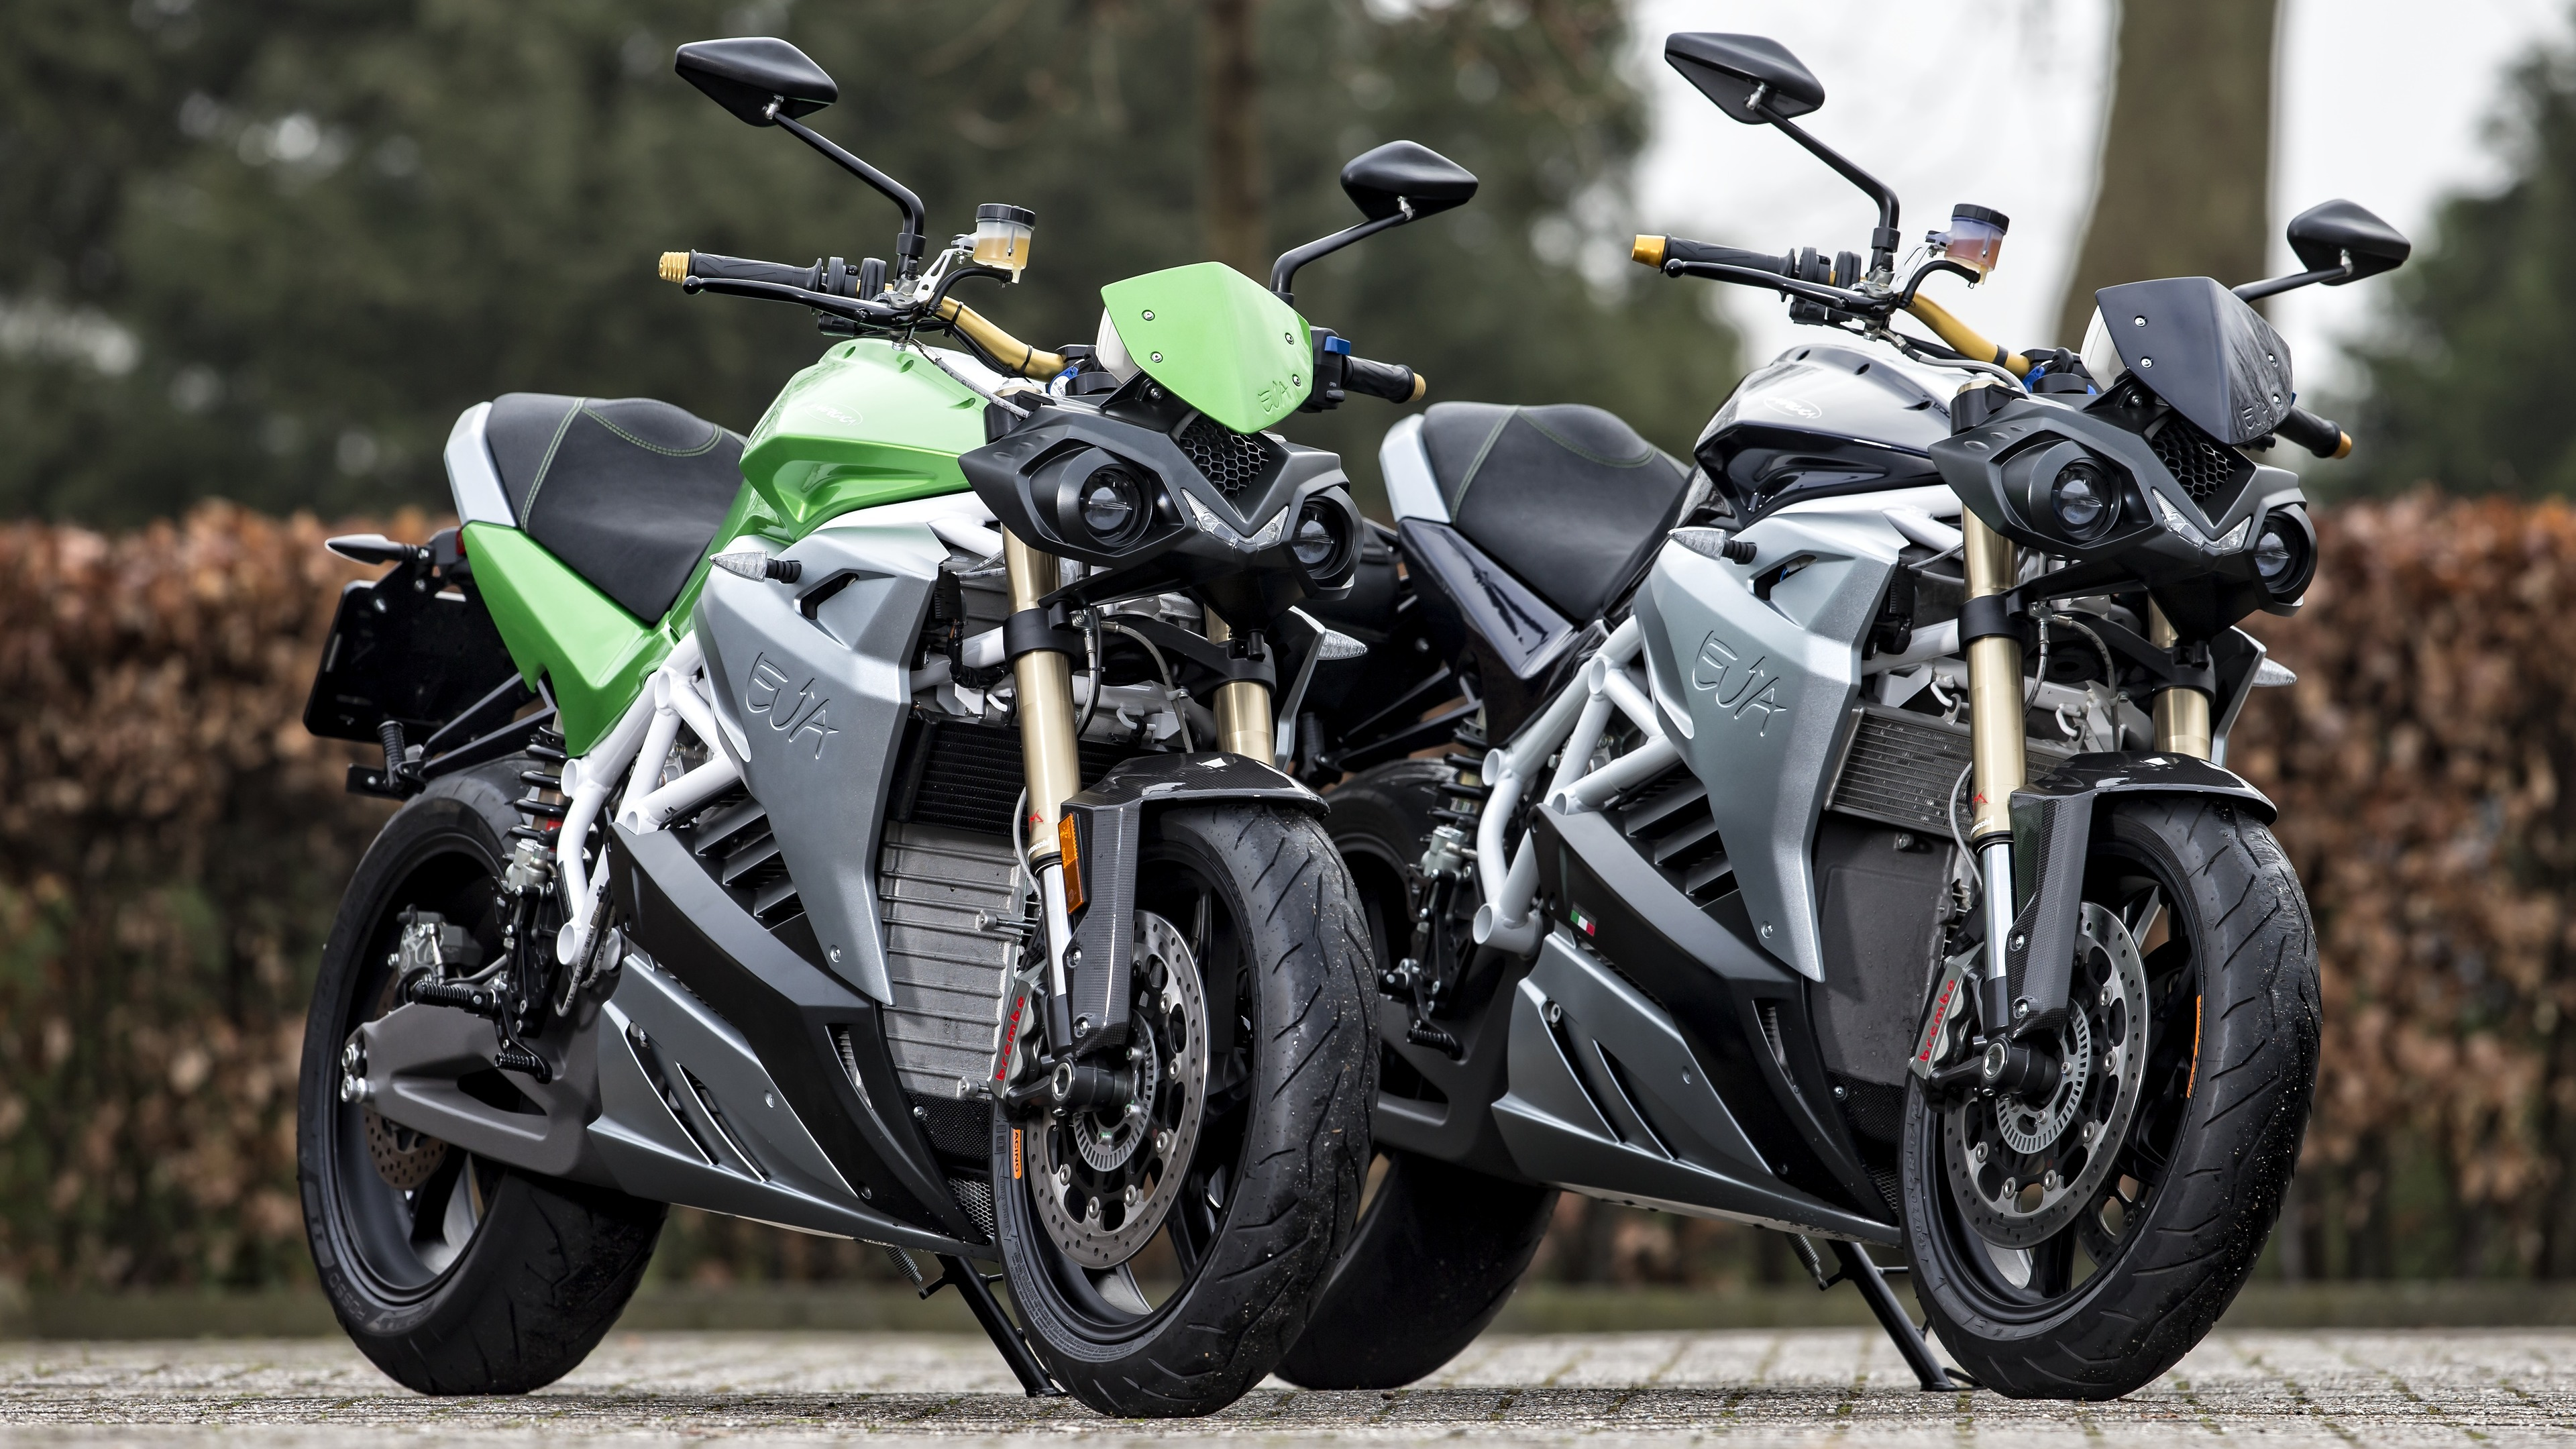 energica motorcycles 4k 1536316214 - Energica Motorcycles 4k - motorcycle wallpapers, bikes wallpapers